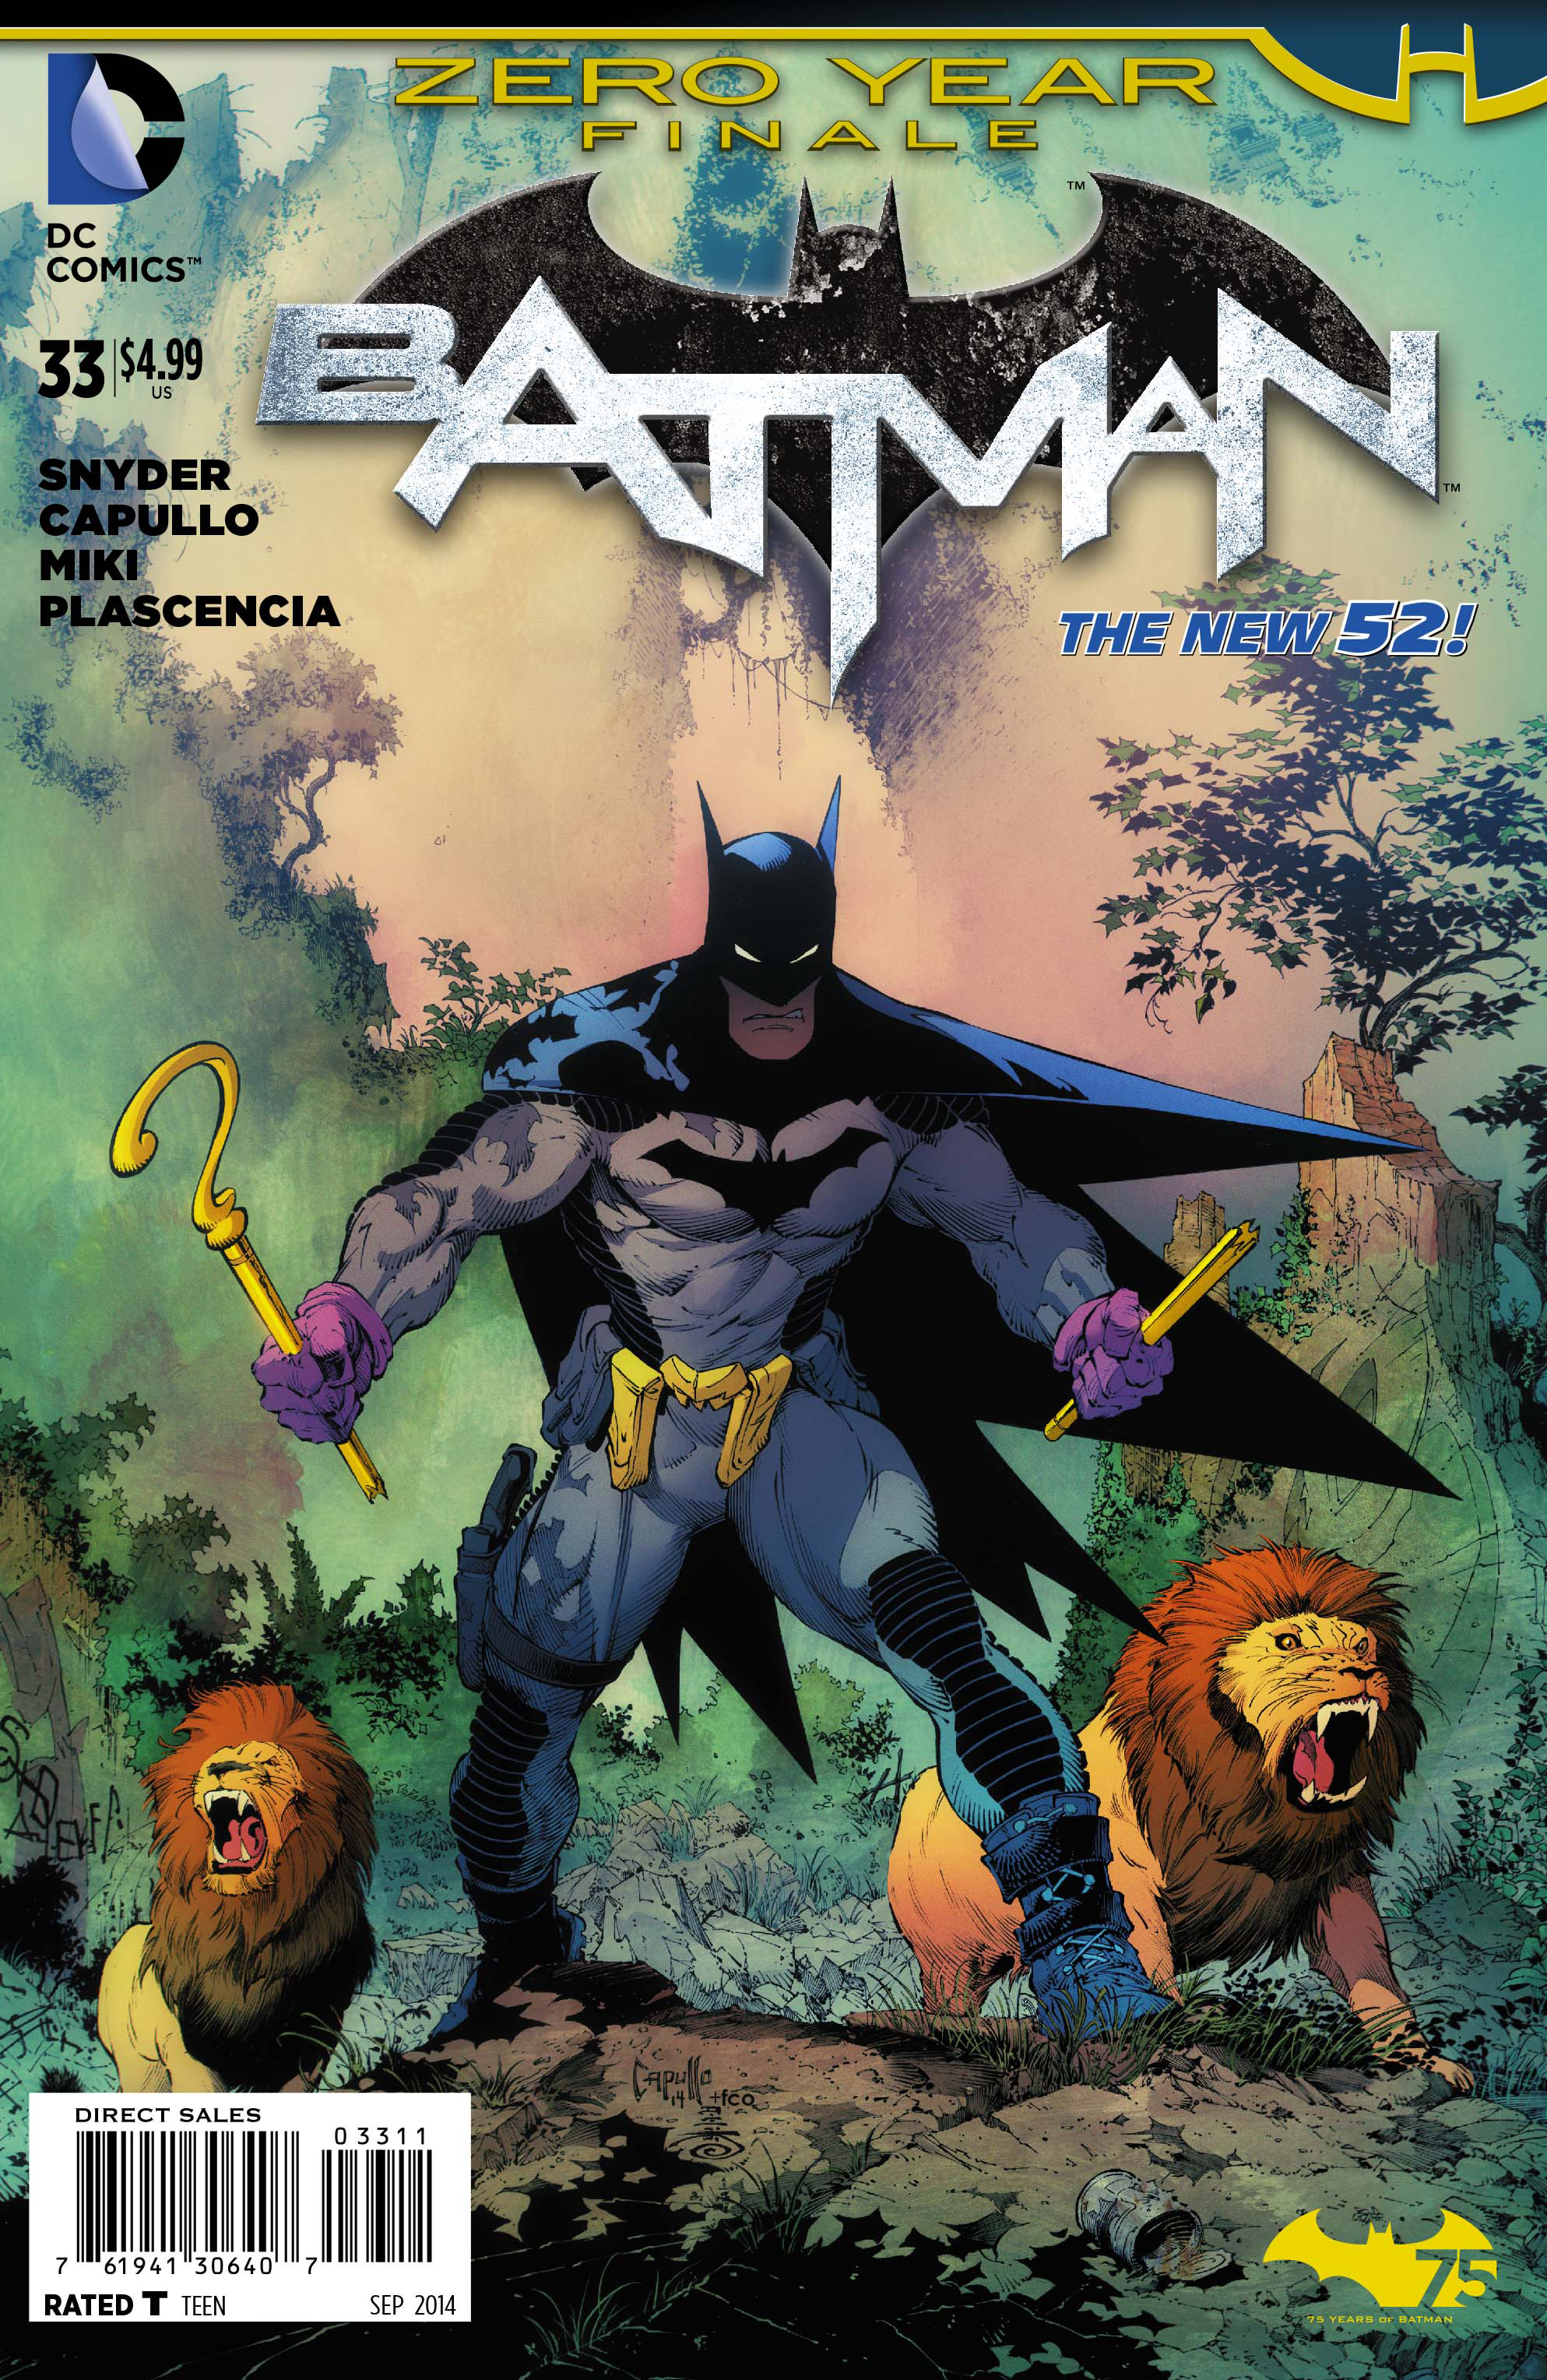 BATMAN #33 (ZERO YEAR)